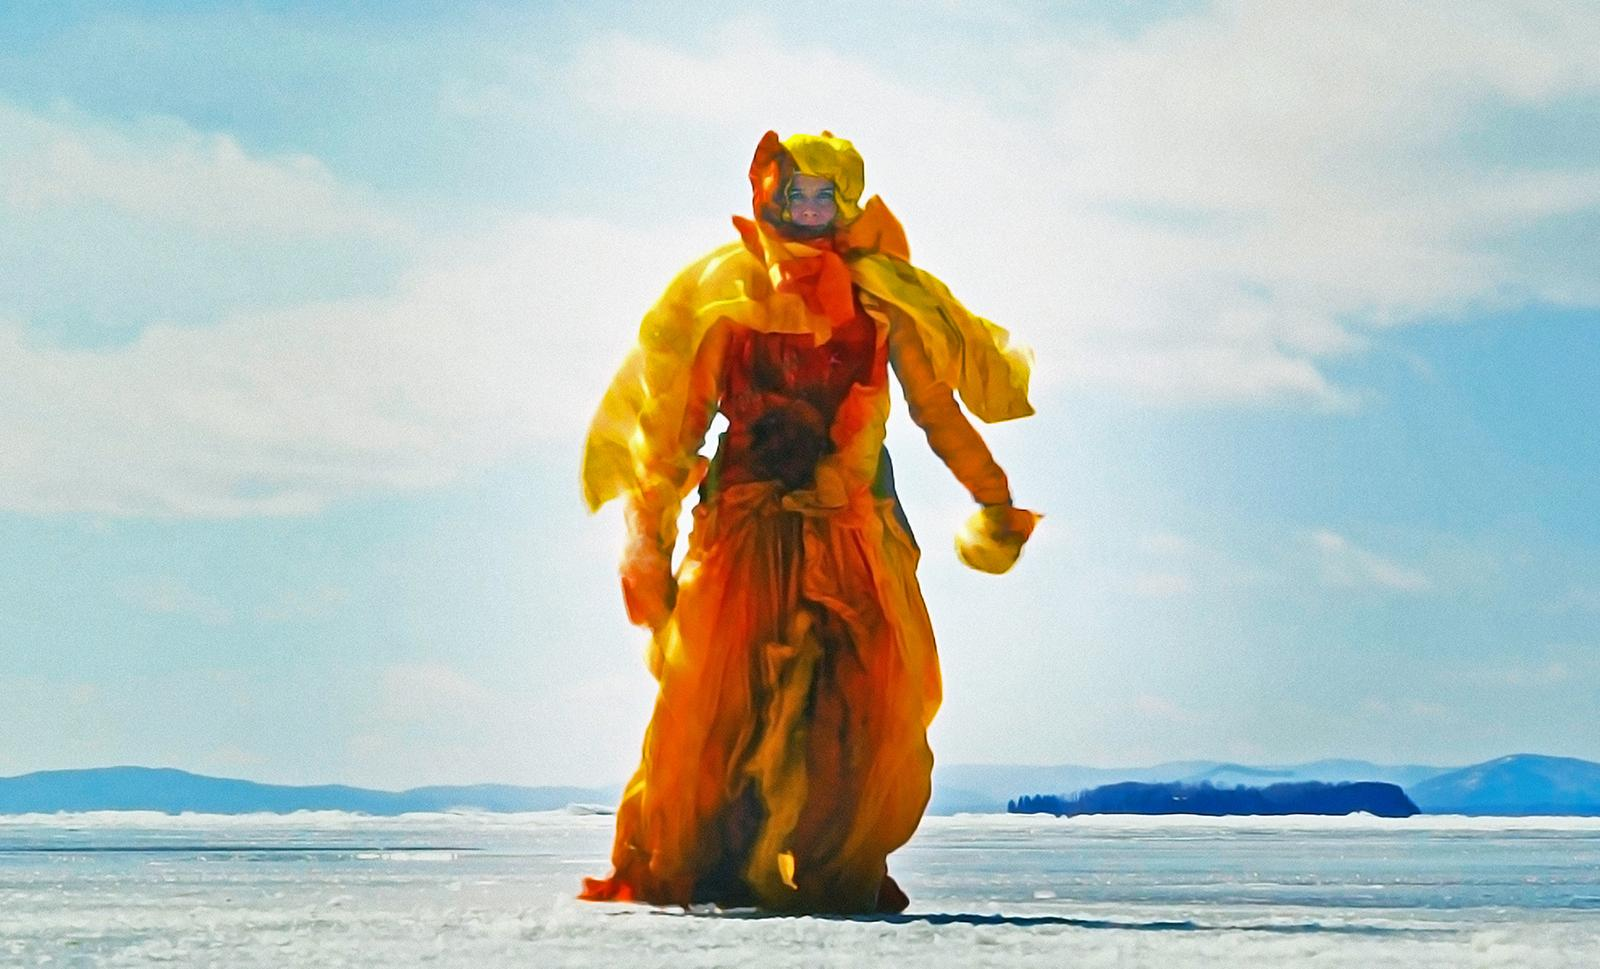 A figure covered except for the face in yellow and orange fabric approaches the camera, walking on a frozen lake